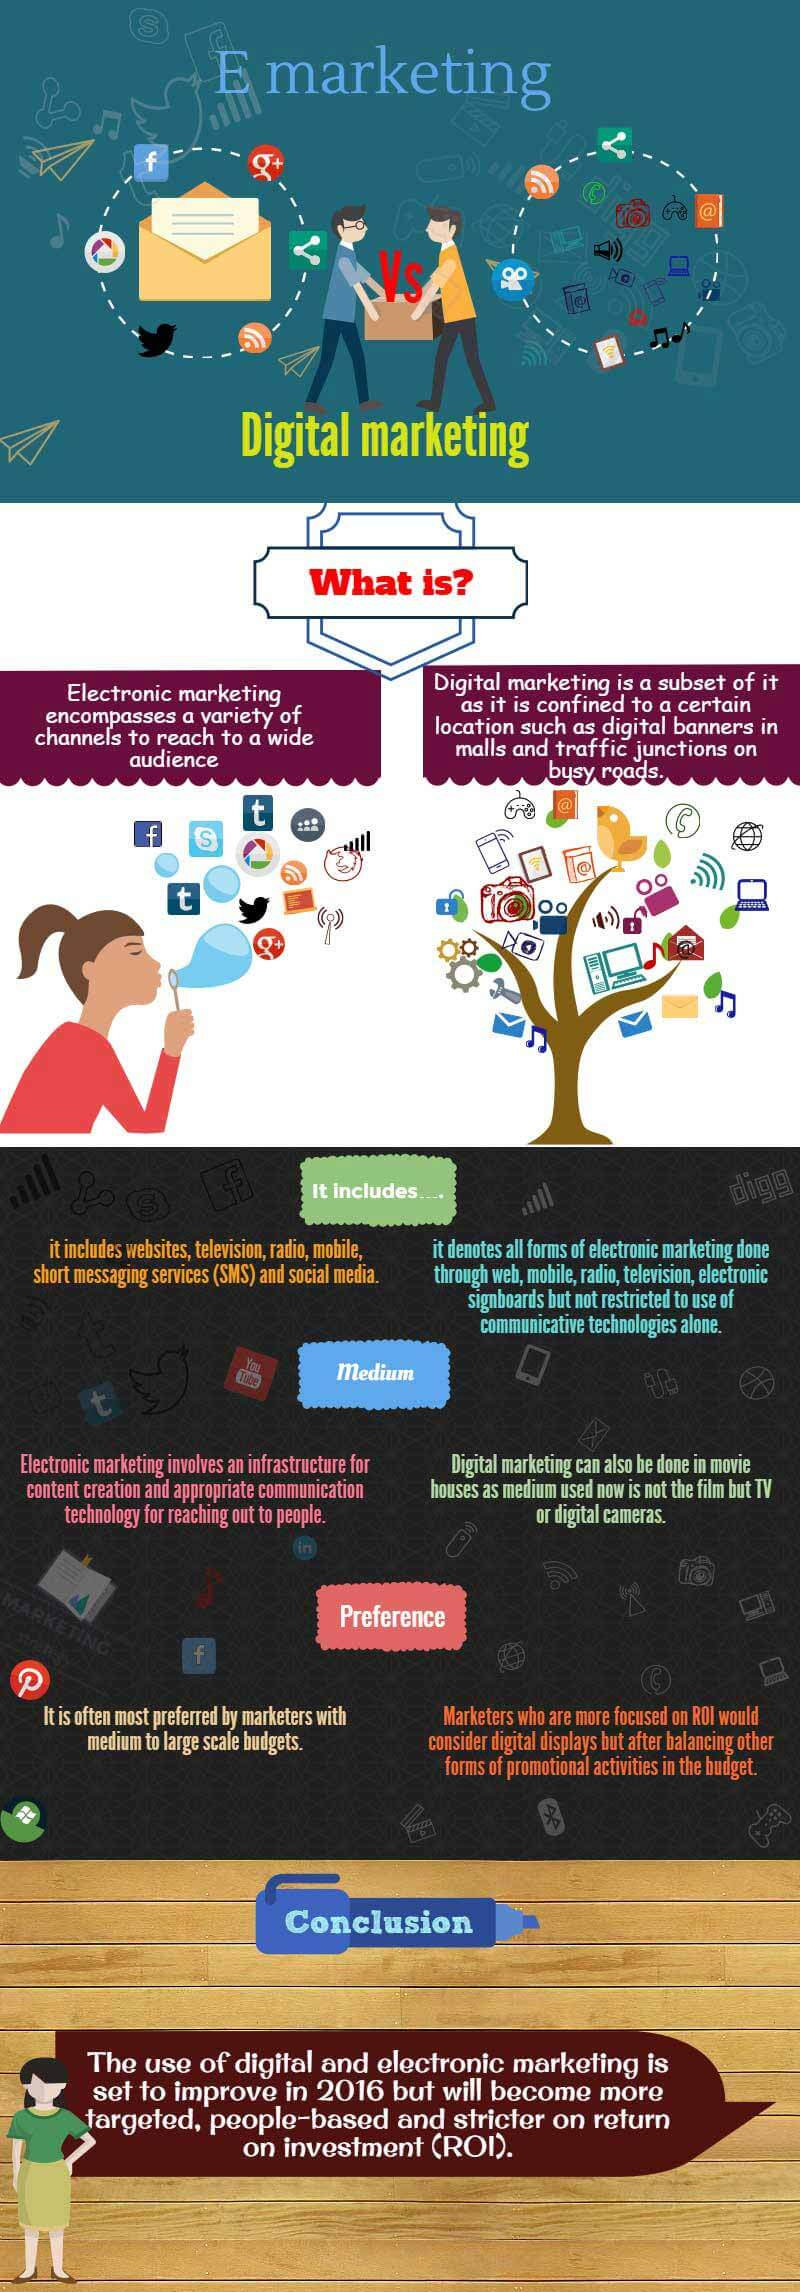 emarketing vs digital marketing infographics